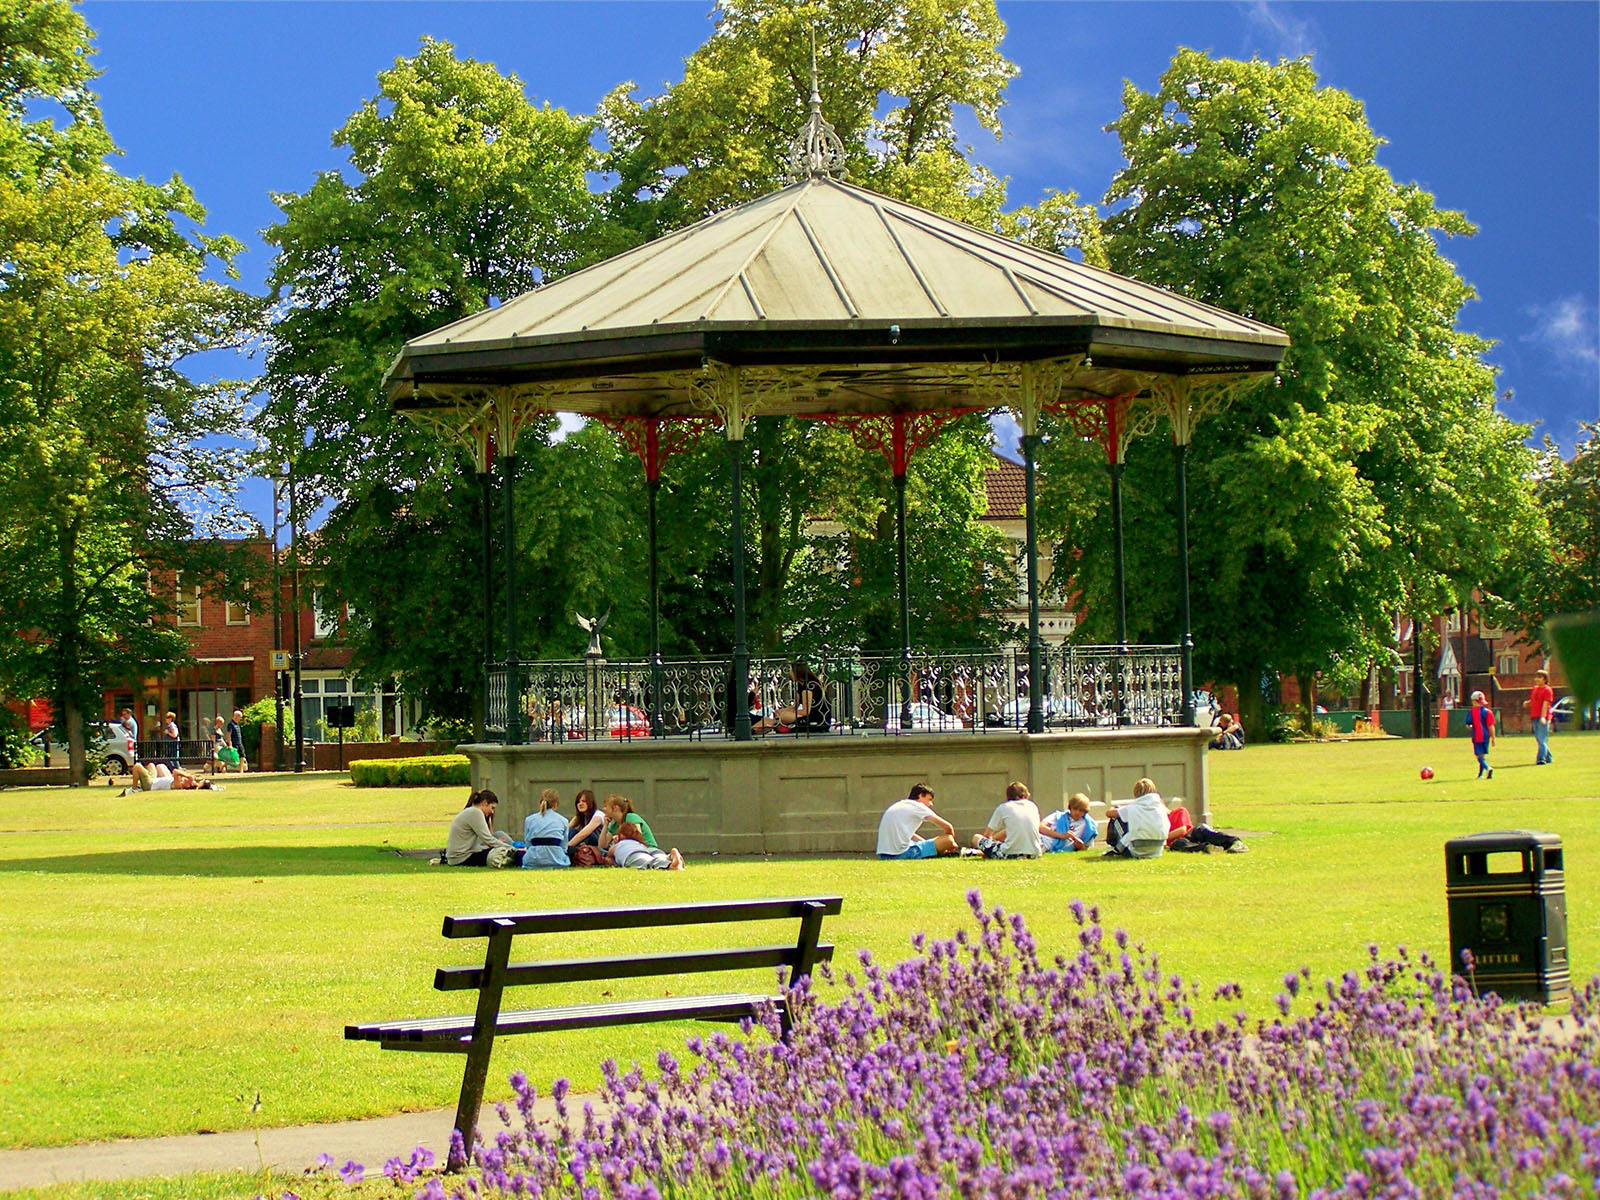 Victorian Bandstand in Eastleigh, Hampshire.